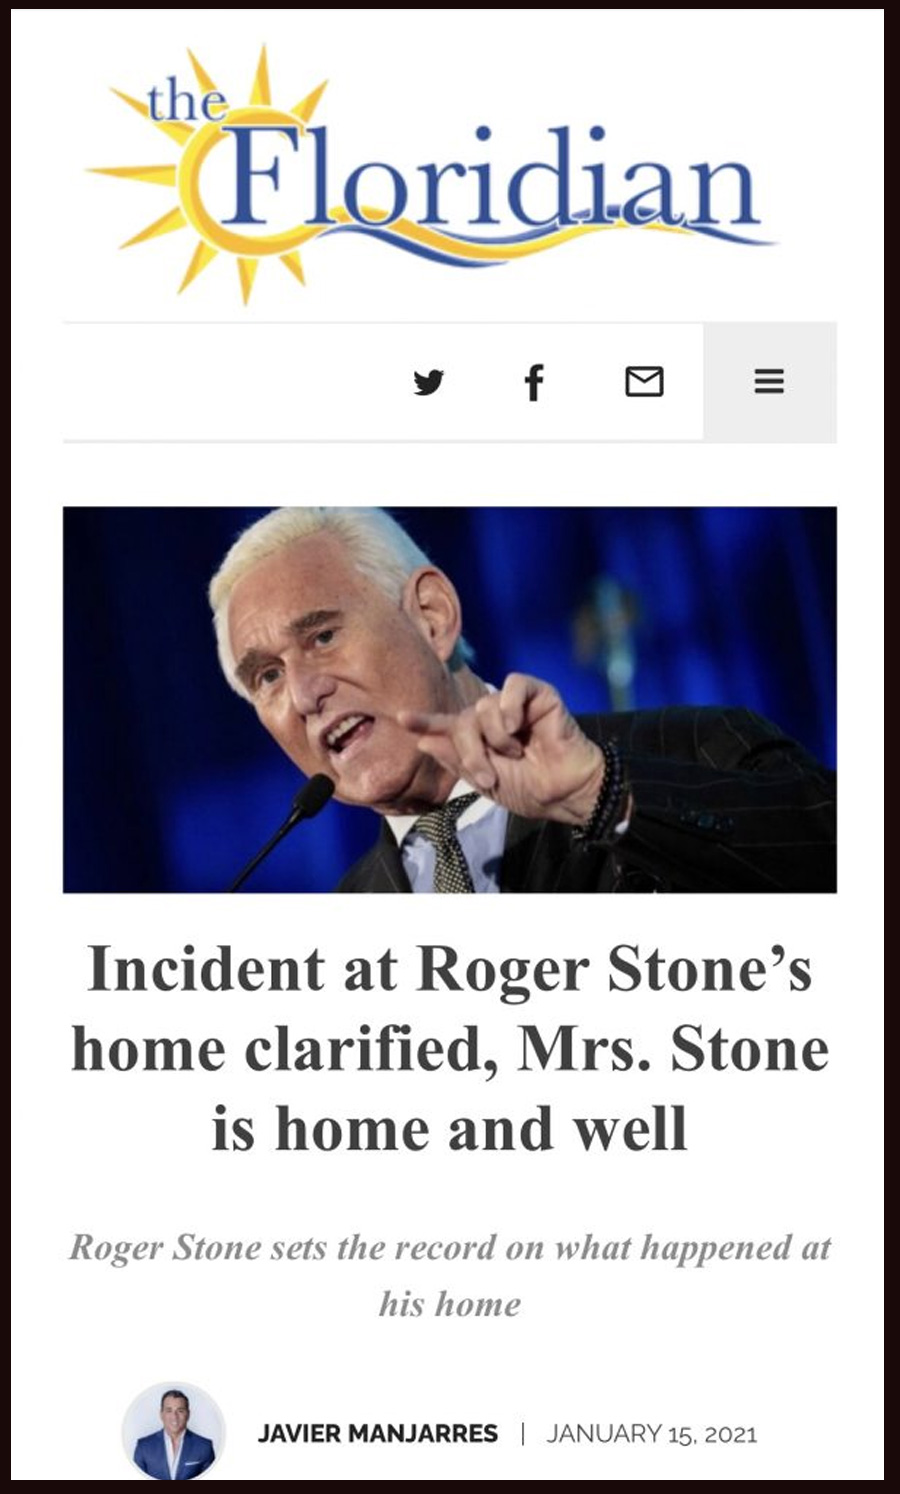 Incident at Roger Stone's home clarified, Mrs. Stone is home and well. Roger Stone sets the record on what happened at his home